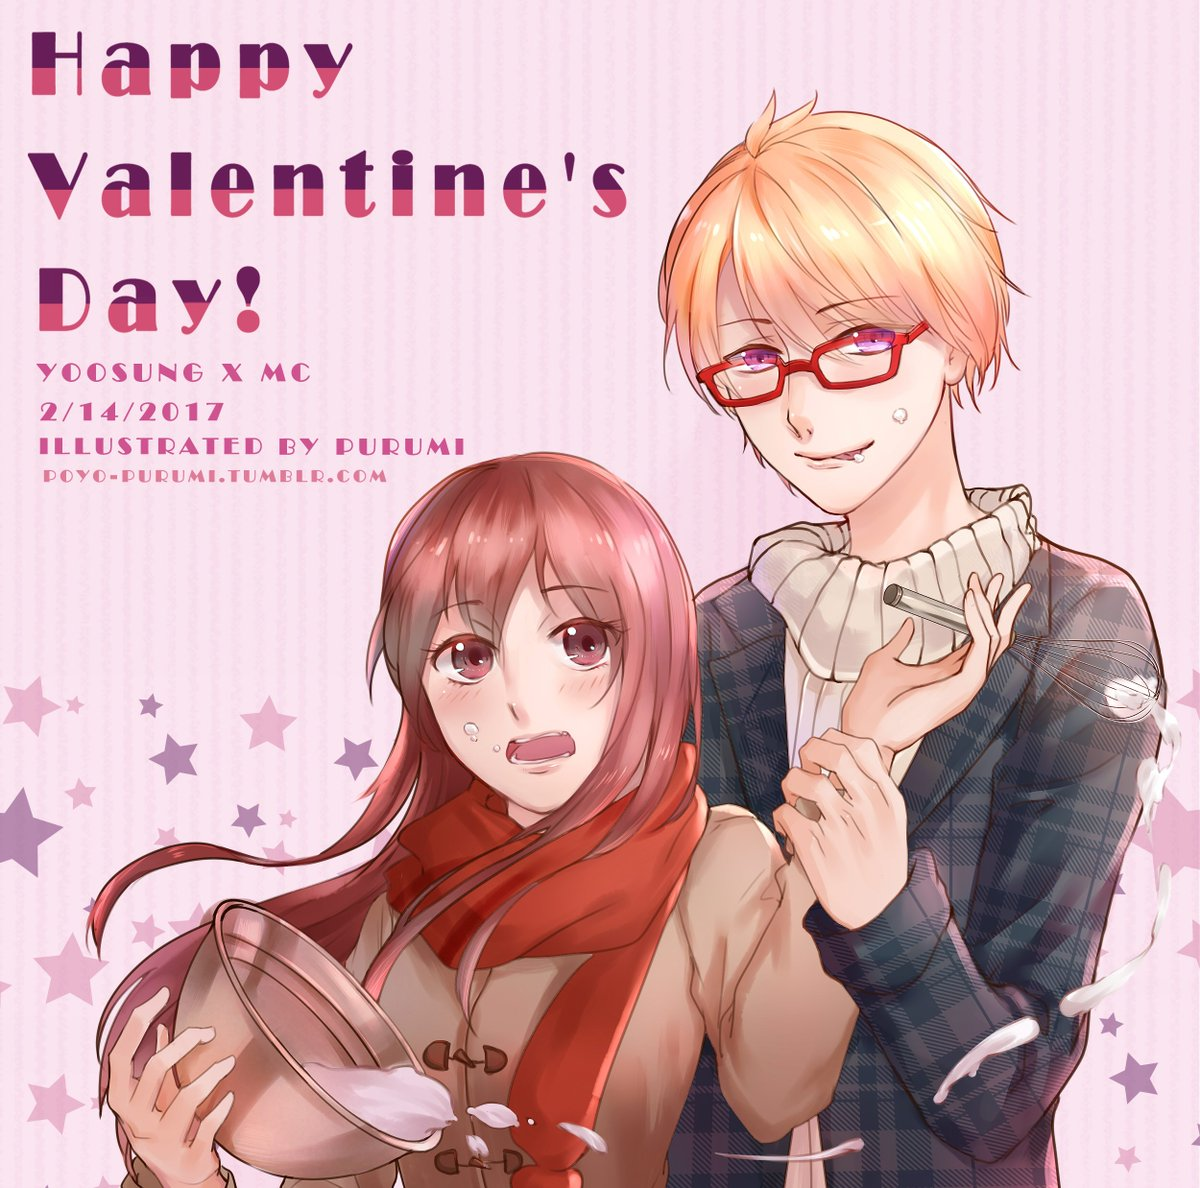 Purumi On Twitter Happy Valentine S Day ノ Valentine S